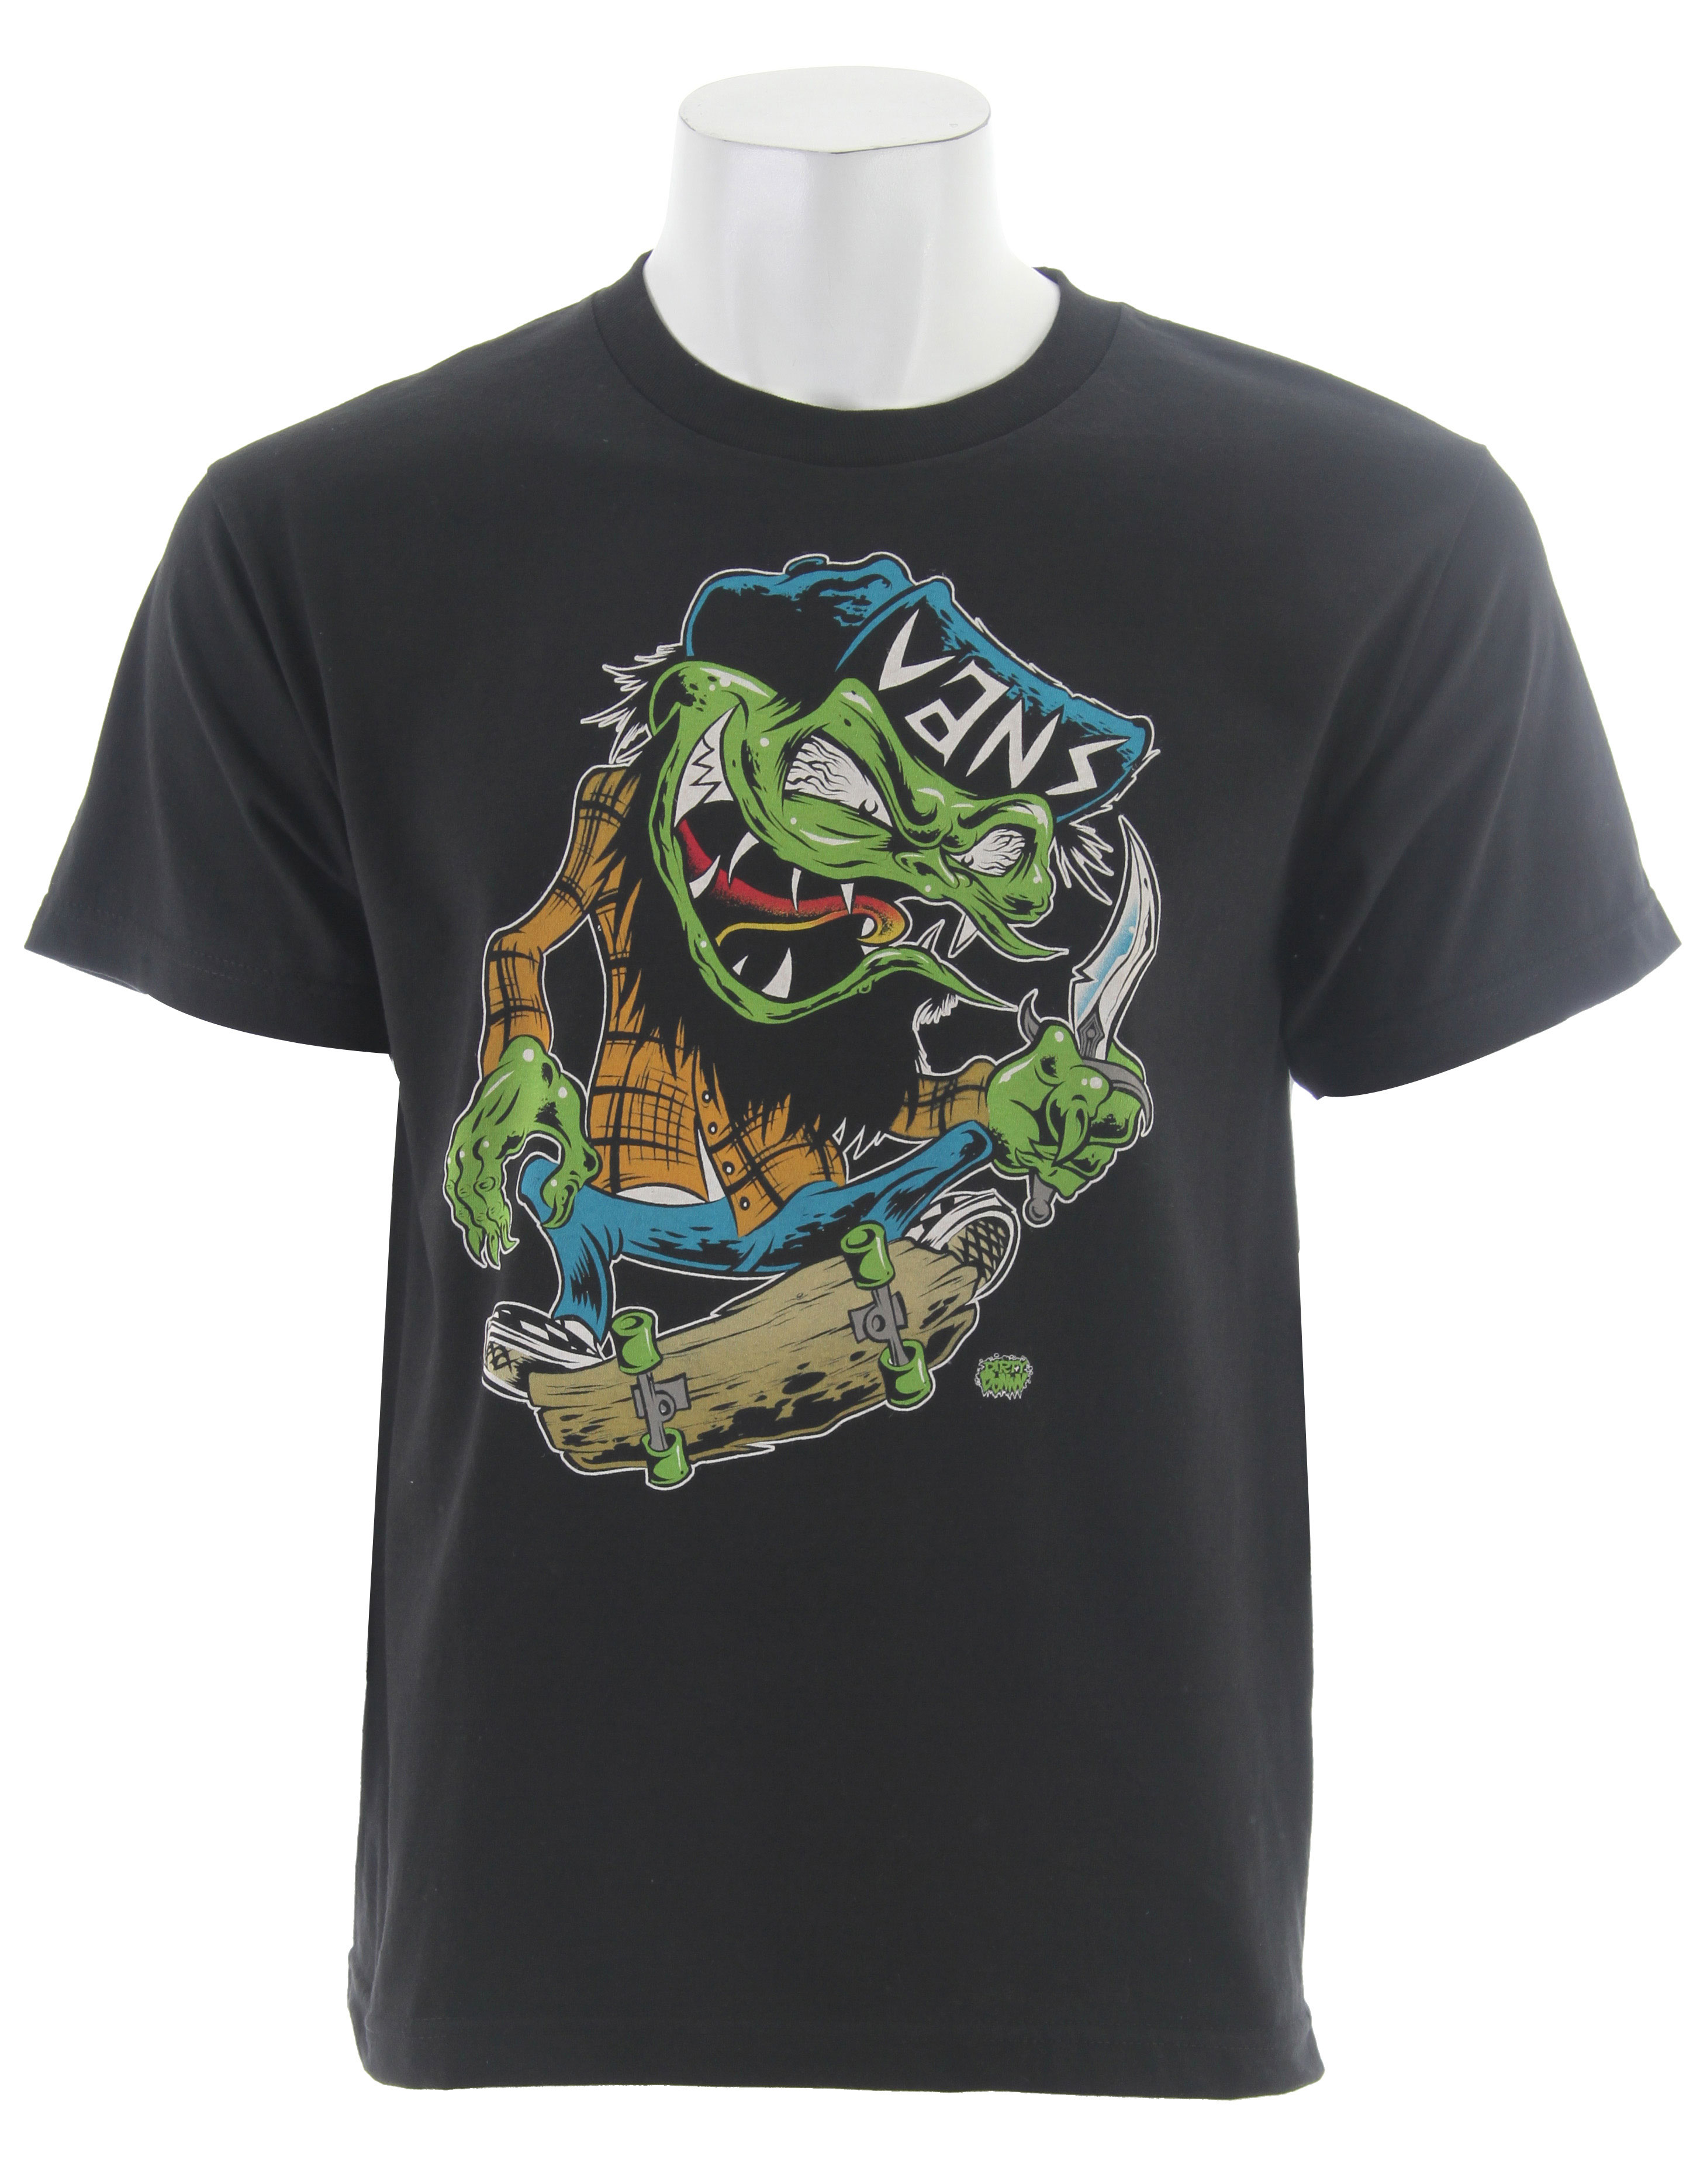 Skateboard Key Features of The Vans Dirty Donny Skate Zombie T-Shirt: Regular Fit Crew Neck Short Sleeve - $7.95